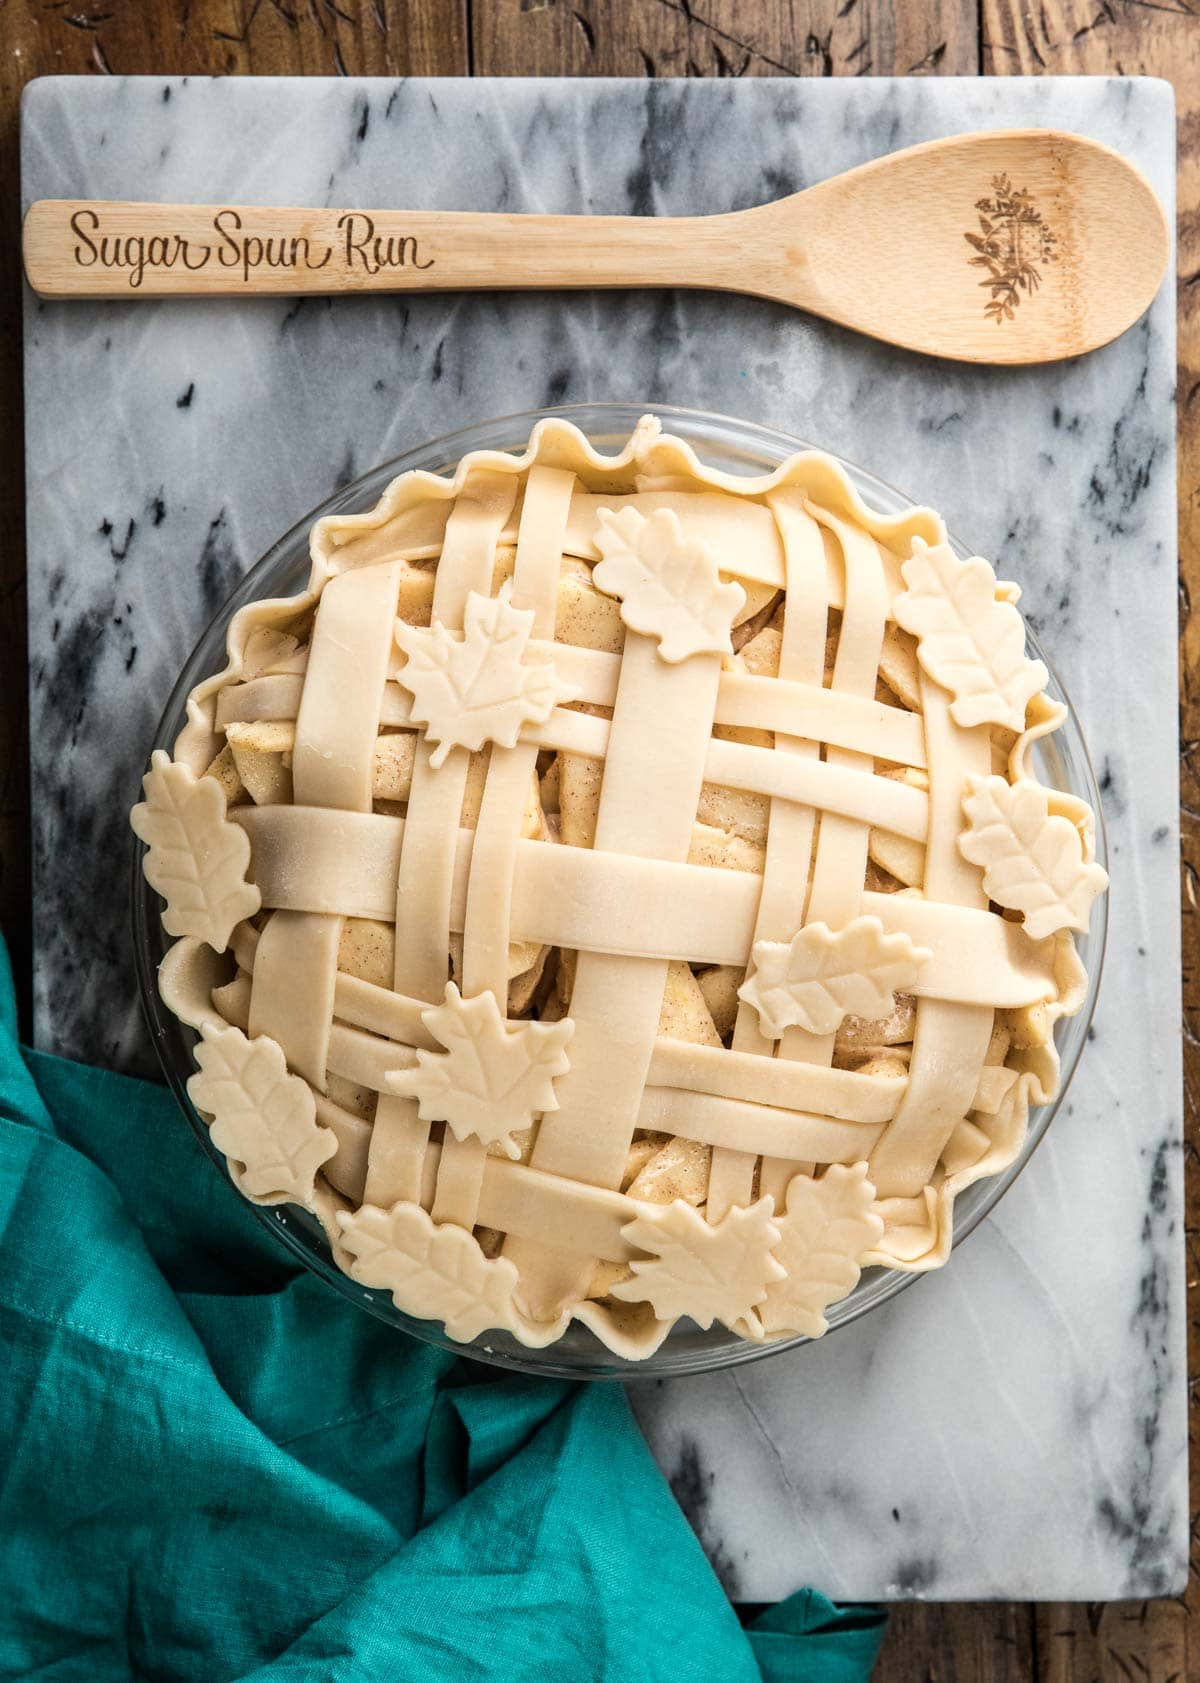 intricate lattice pie crust